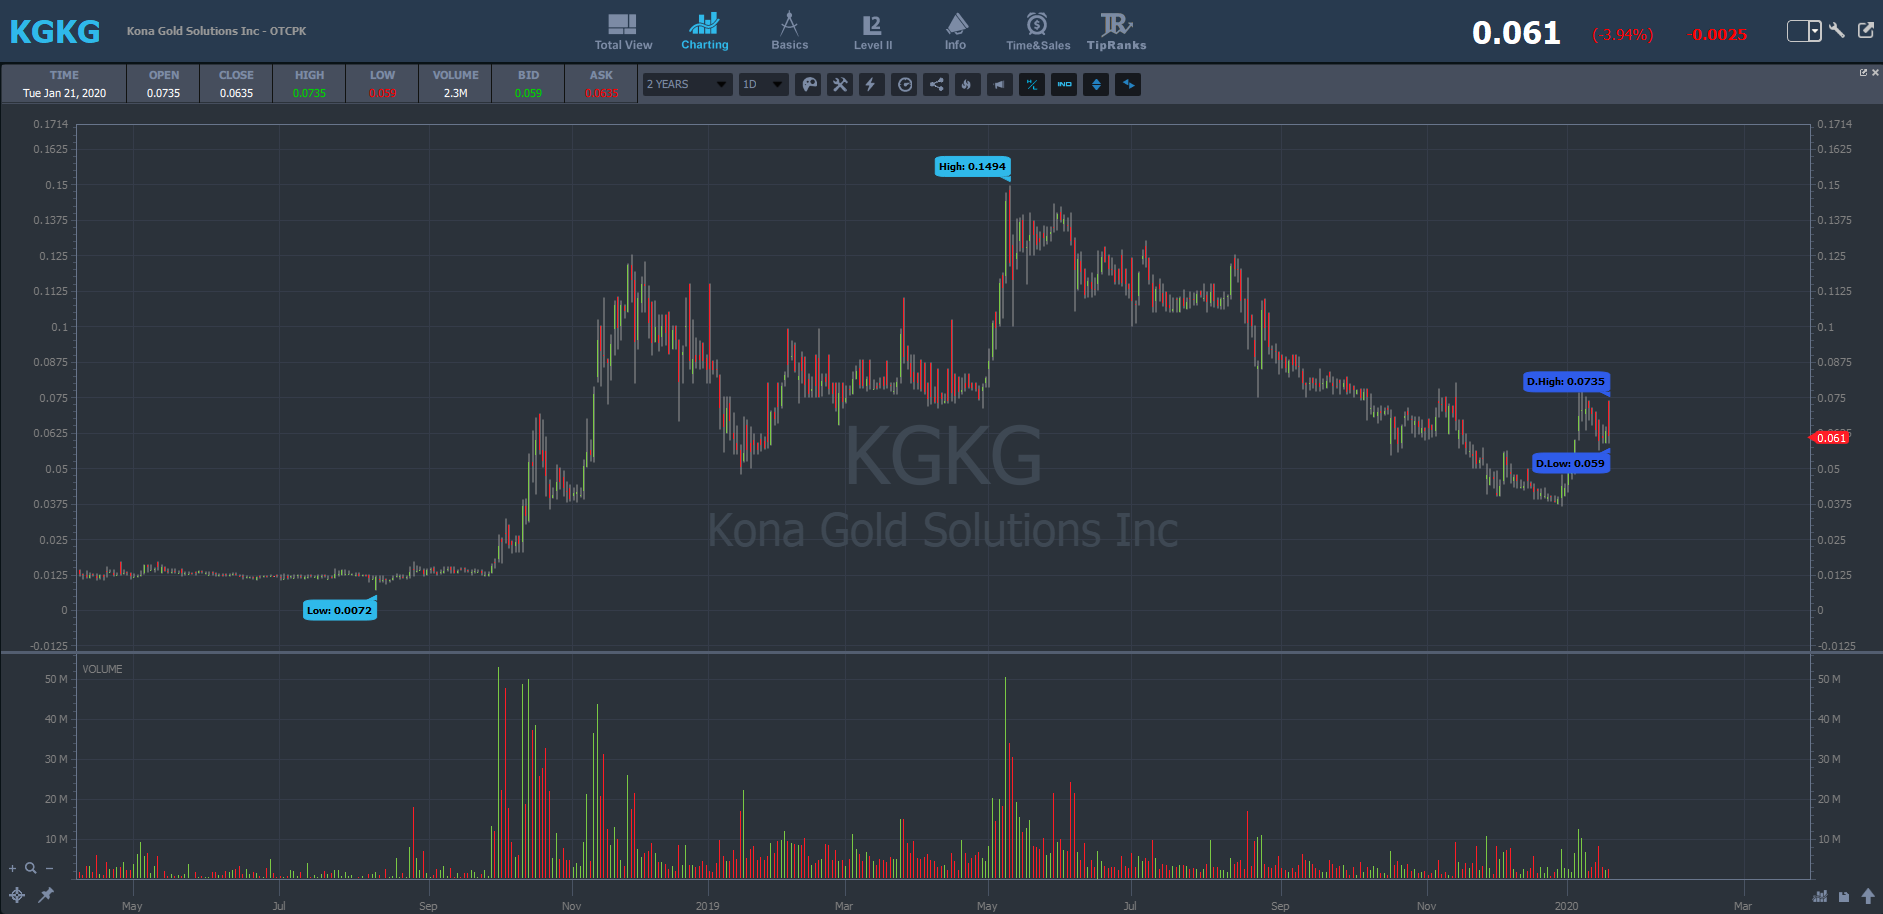 another hot OTC: KGKG